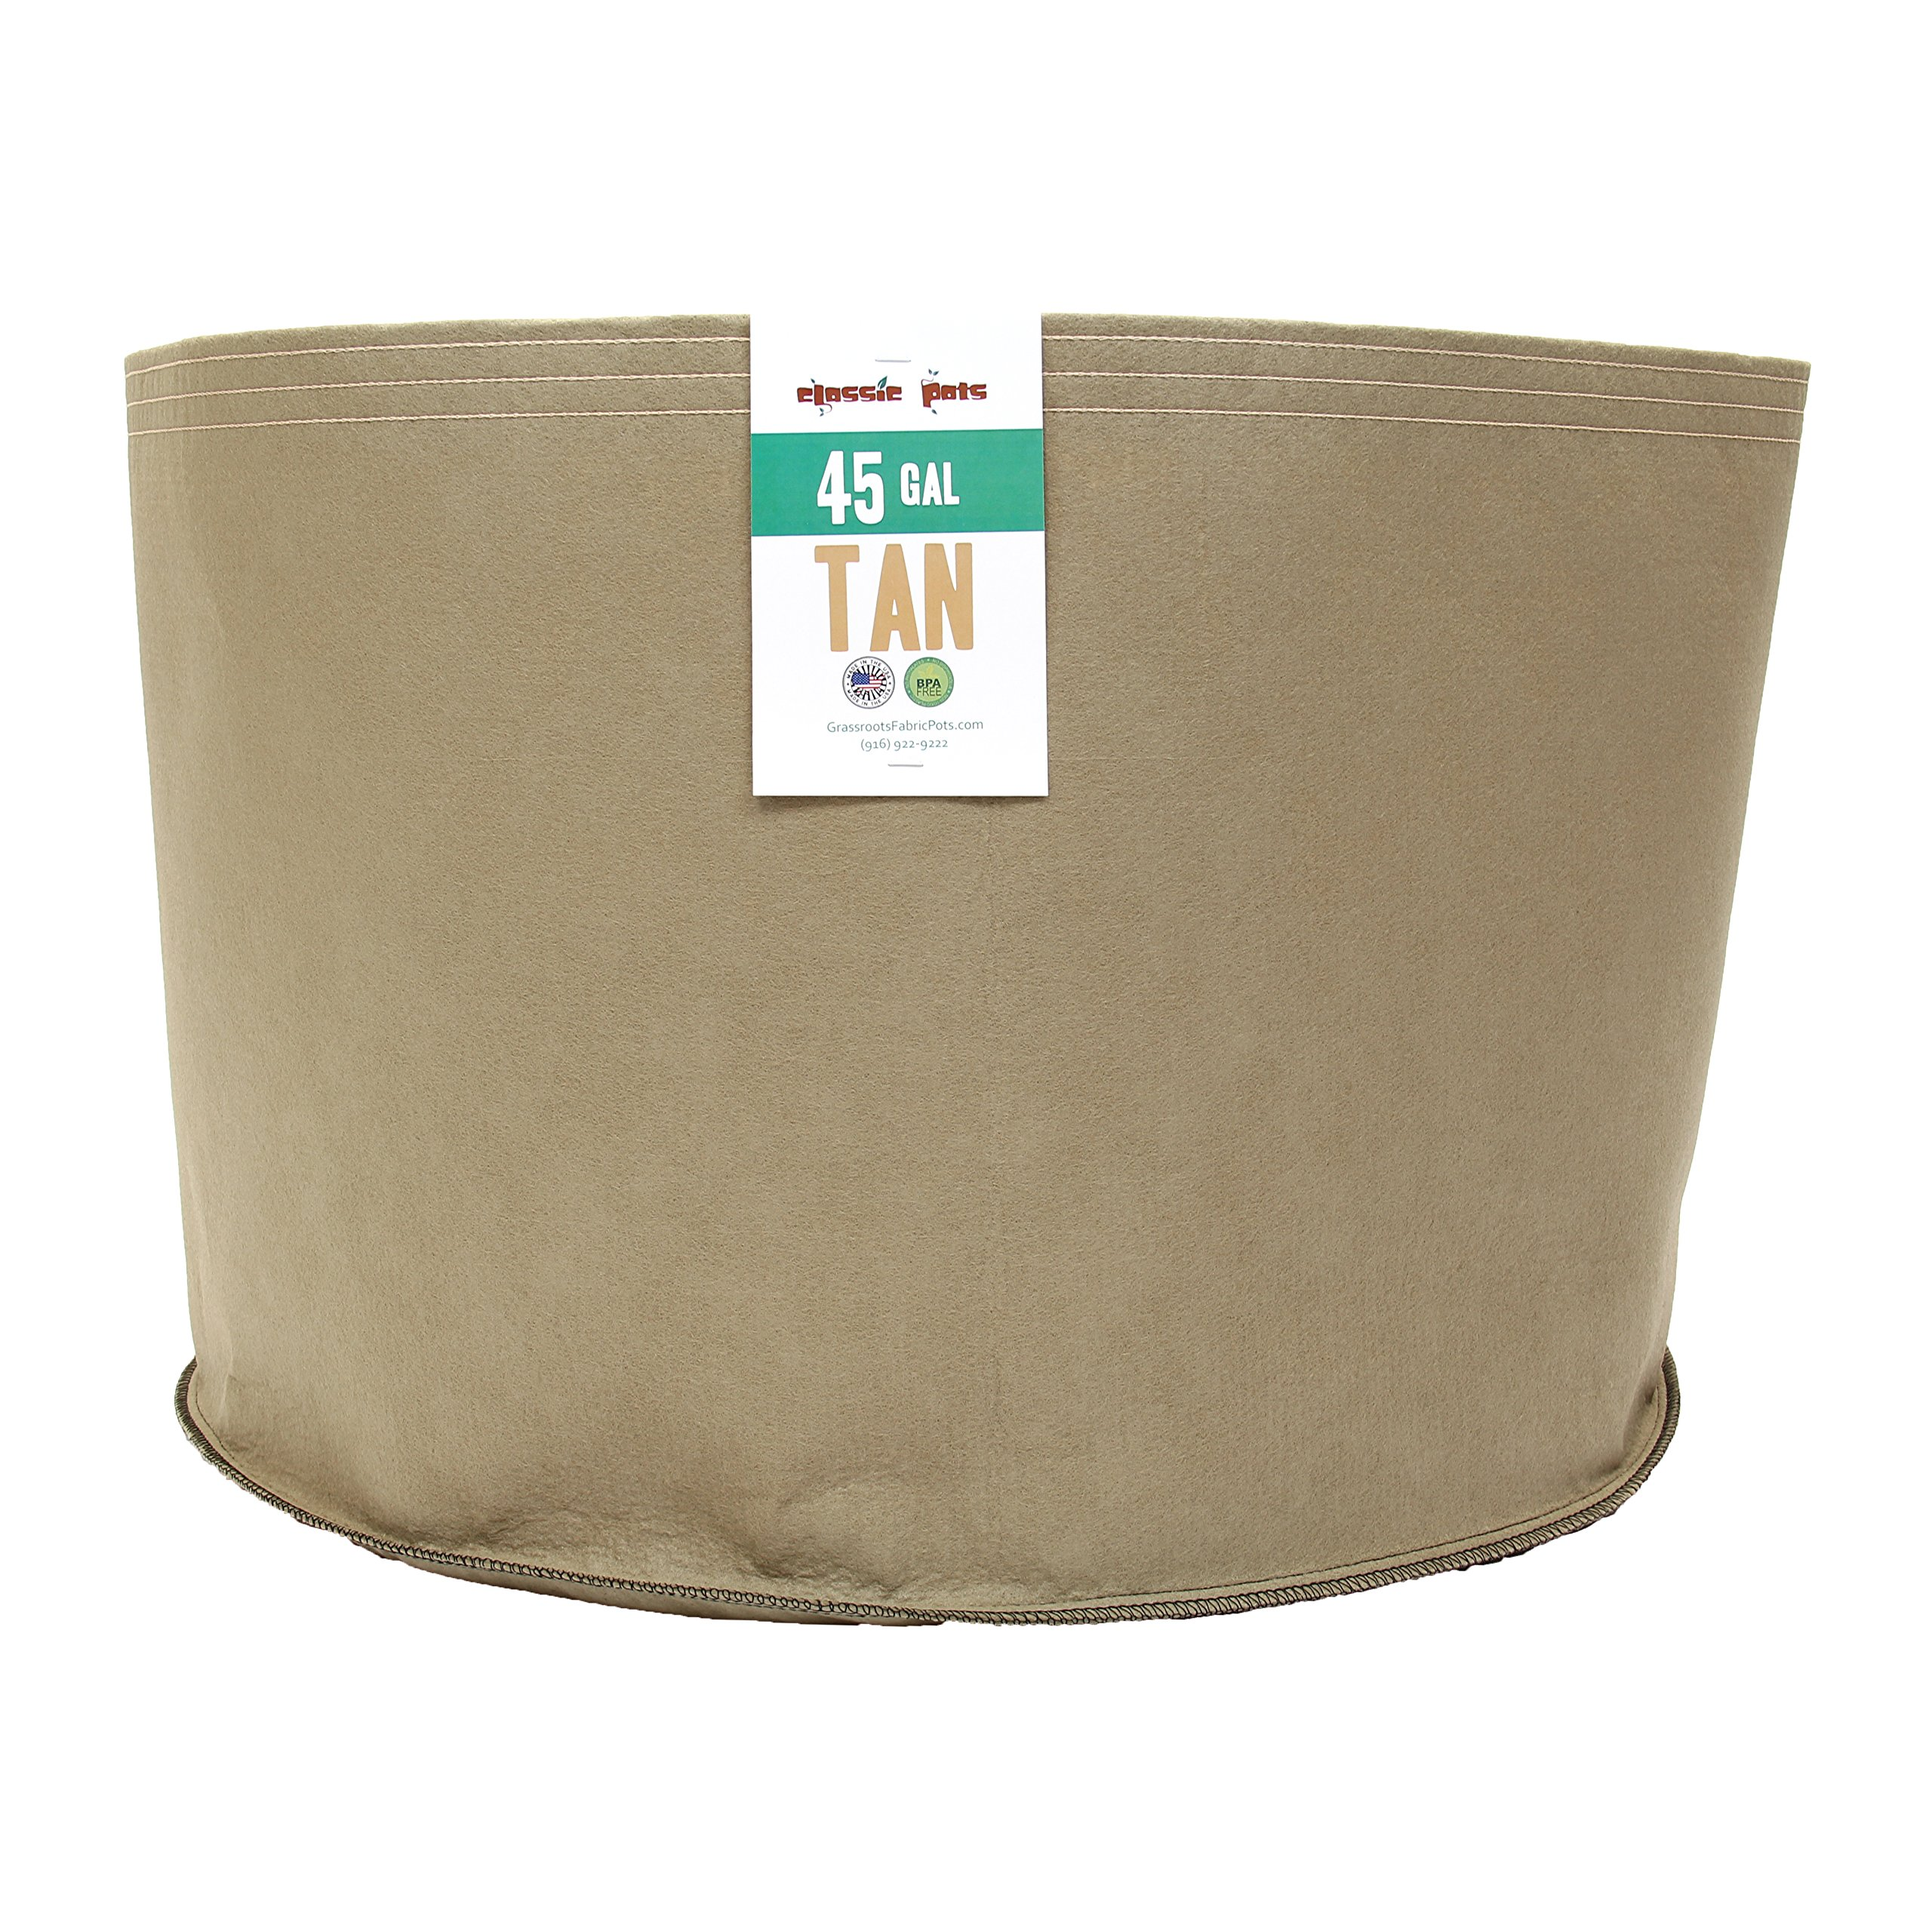 (20 Pack) 45 Gallon Tan Grassroots Fabric Pot - Grow Pot and Aeration Container by Grassroots Fabric Pots